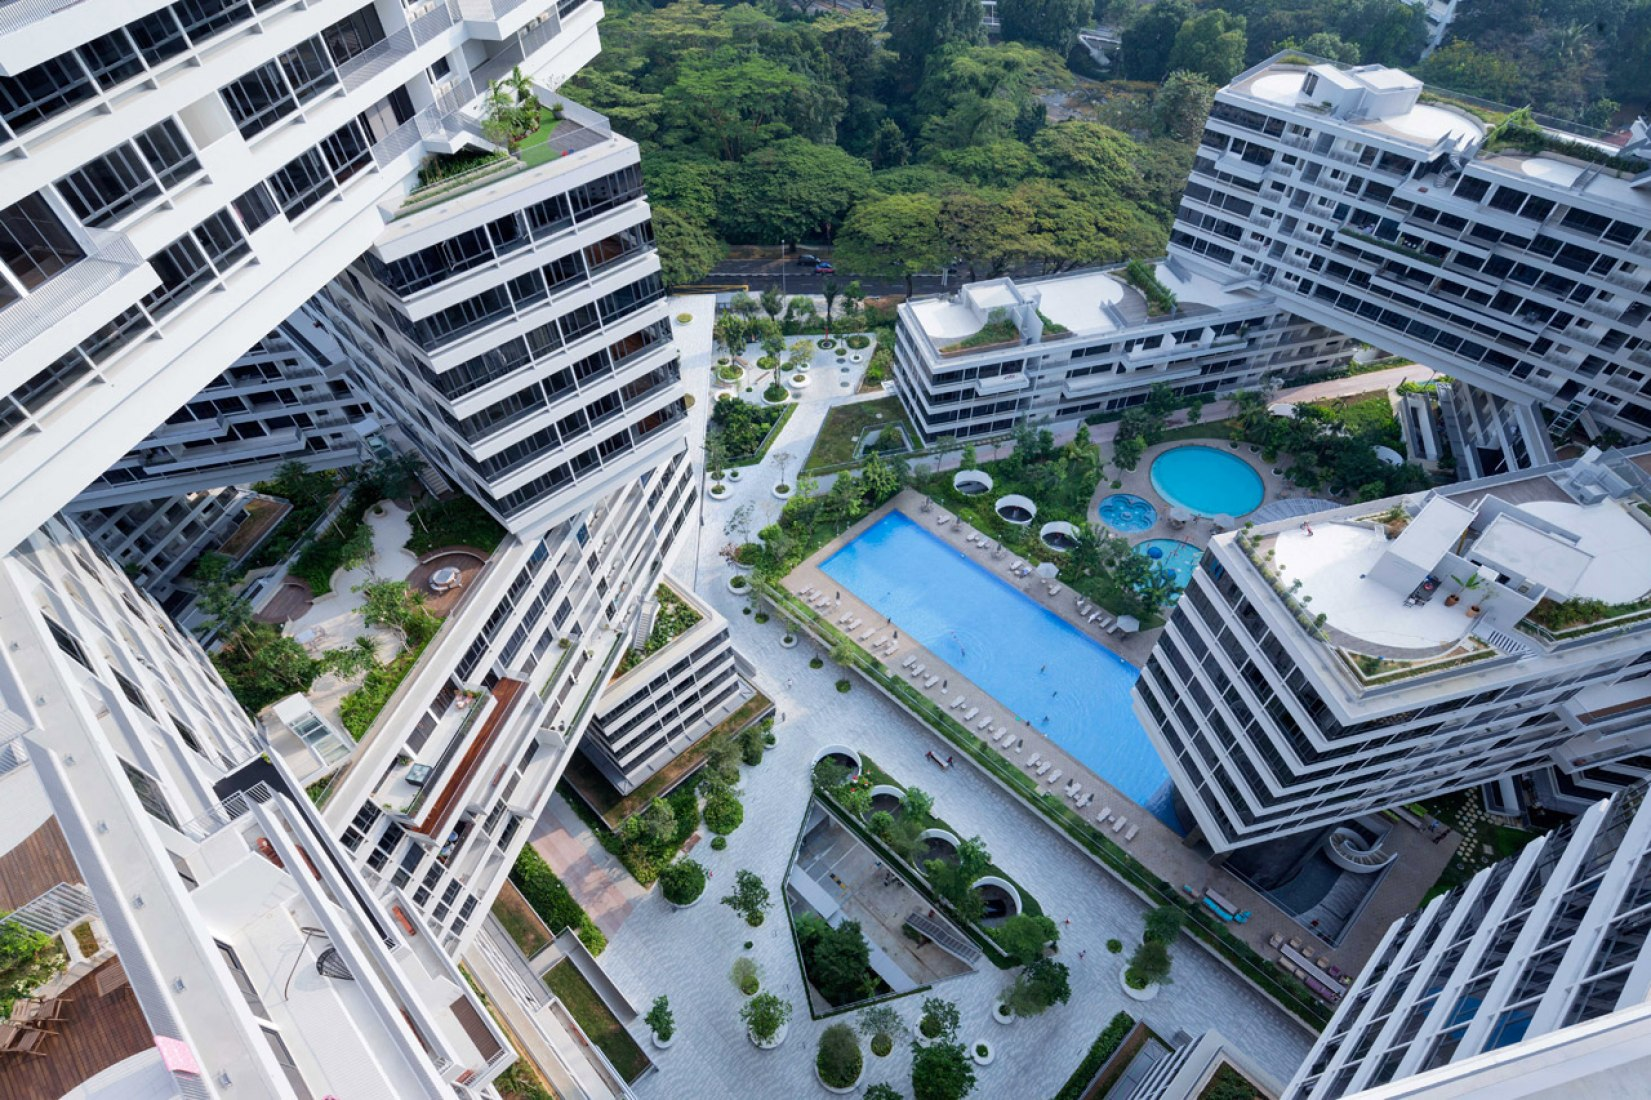 View from terrace. The Interlace, Singapore by OMA / Ole Scheeren. Photograph @ Iwan Baan.